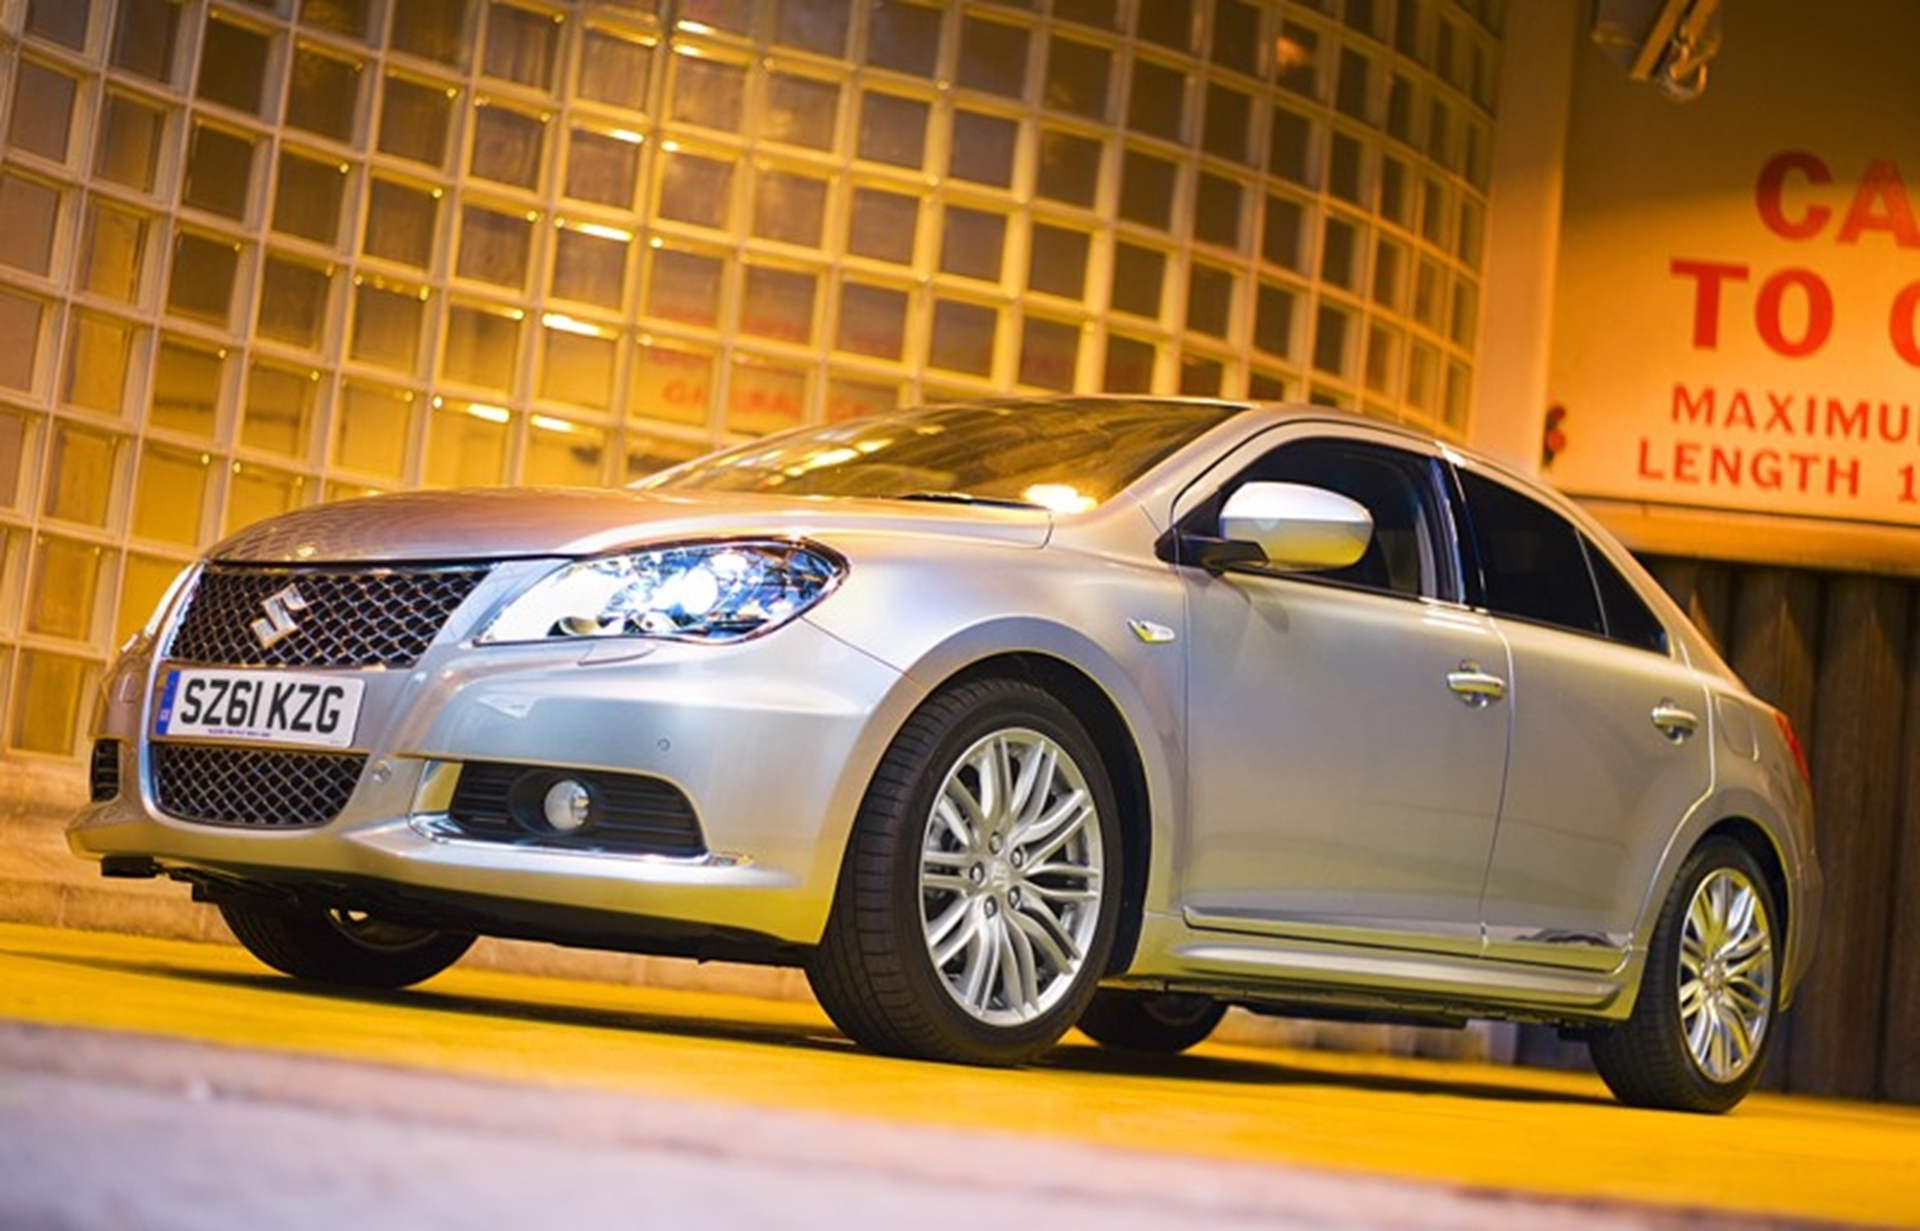 Suzuki Kizashi: The new dynamic mid-sized saloon from SUZUKI